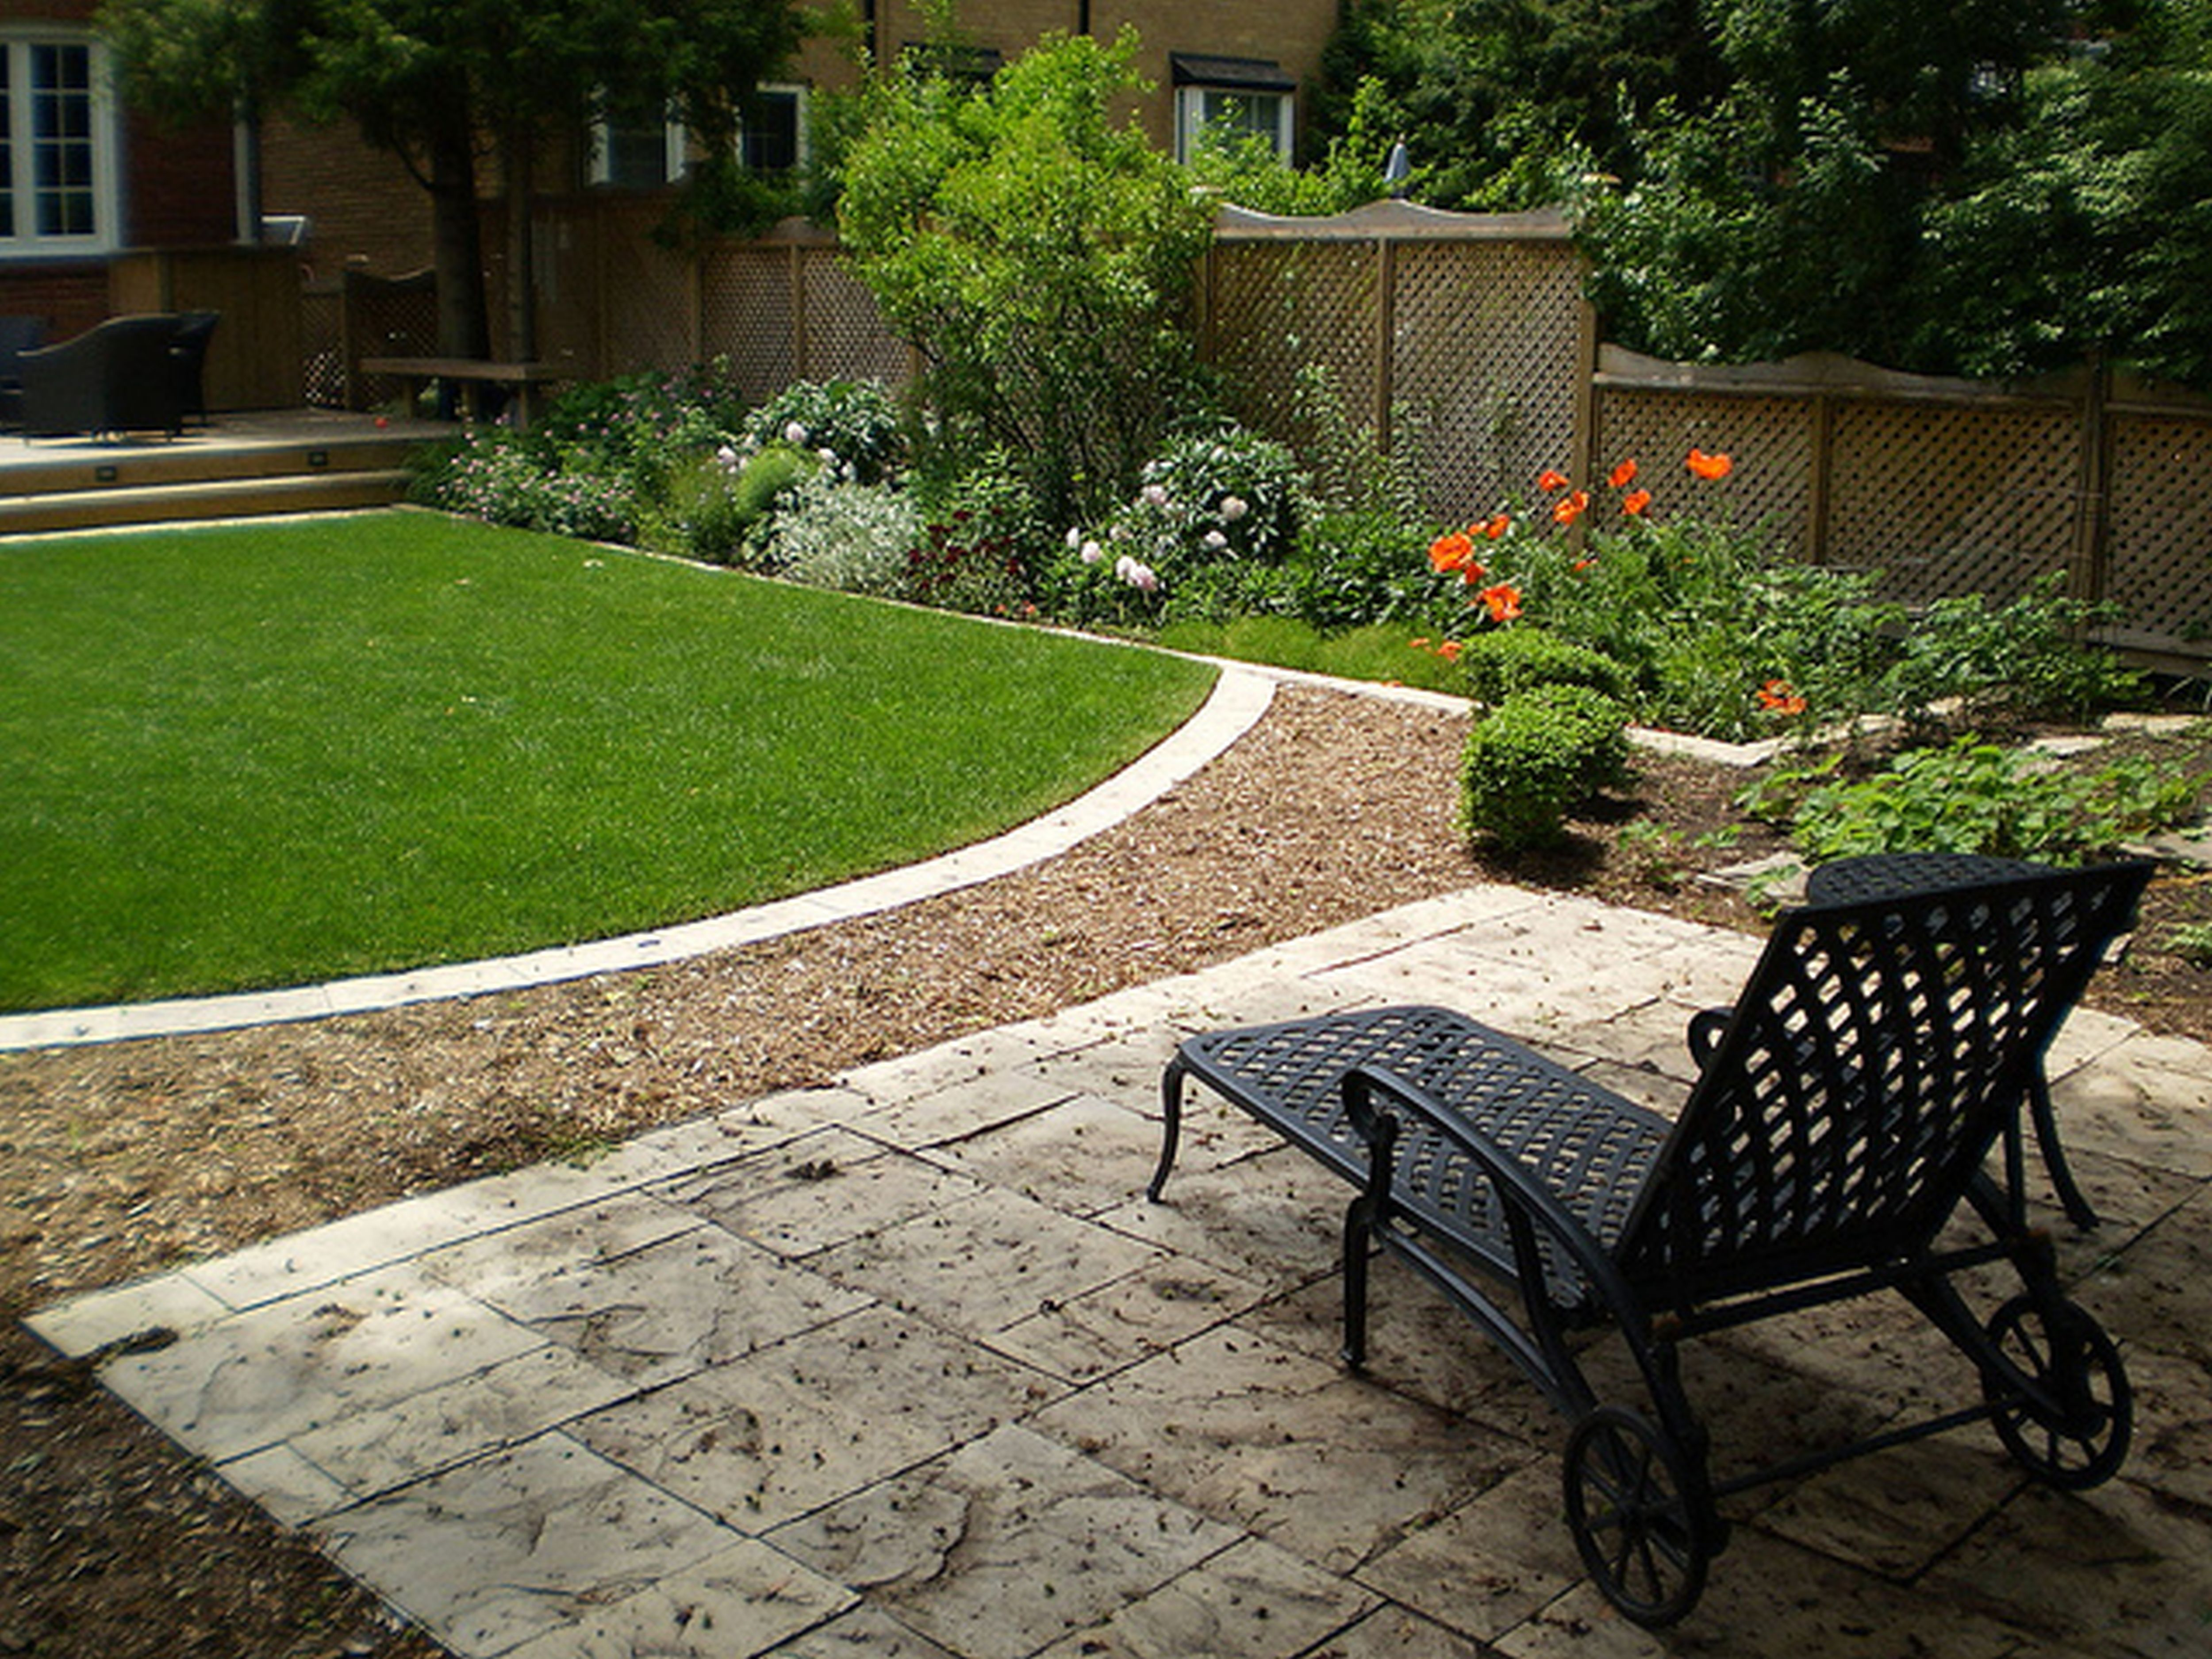 Backyard designs for small yards large and beautiful for Best back garden designs